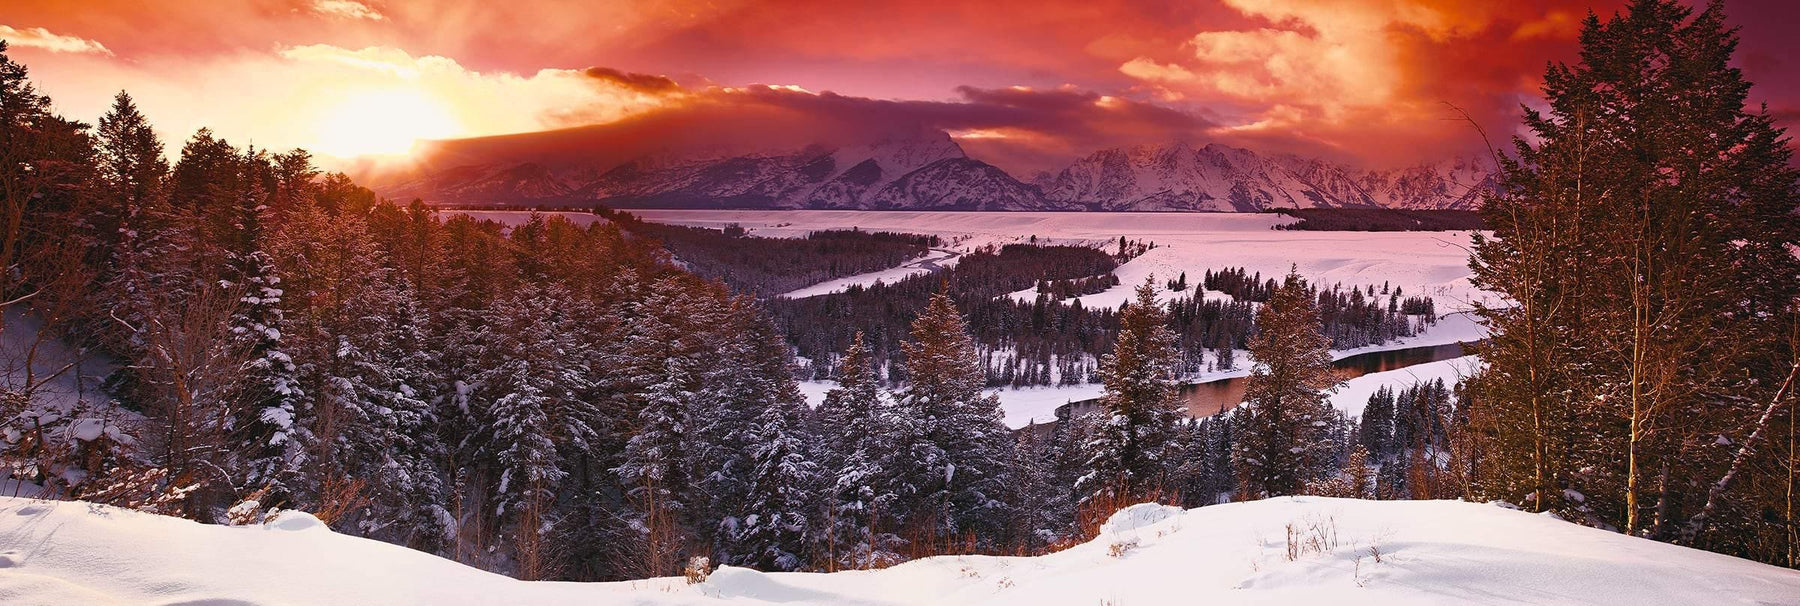 Sun shining through the clouds as it sets on the snow covered valley and forest of Grand Tetons National Park Wyoming